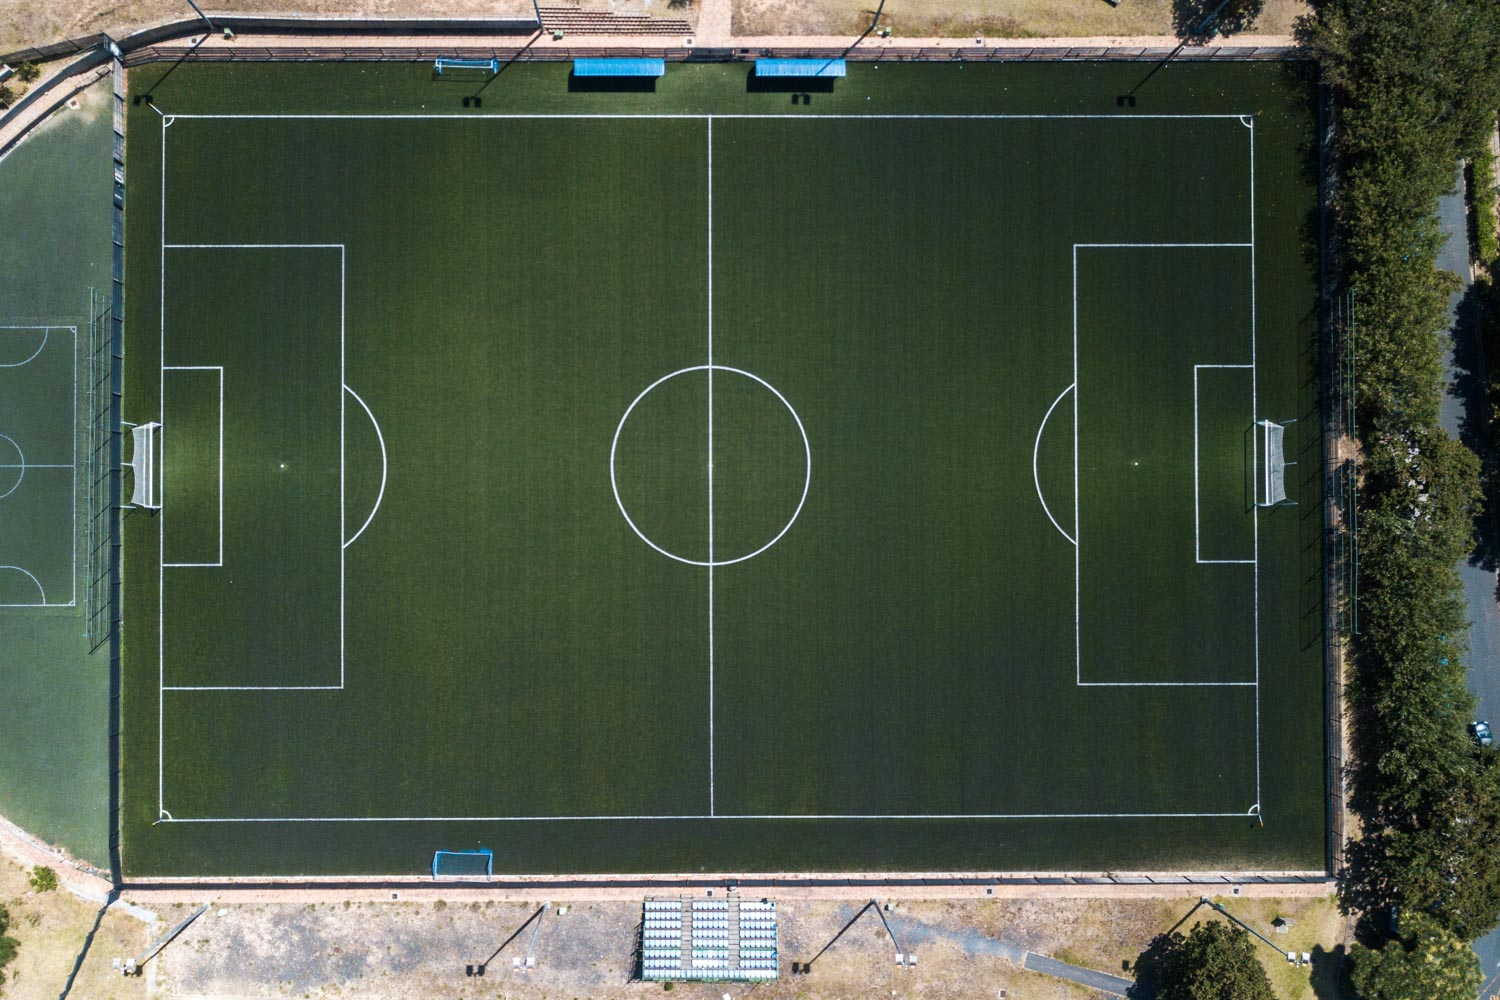 Artificial outdoor football pitch at University of Cape Town (2)